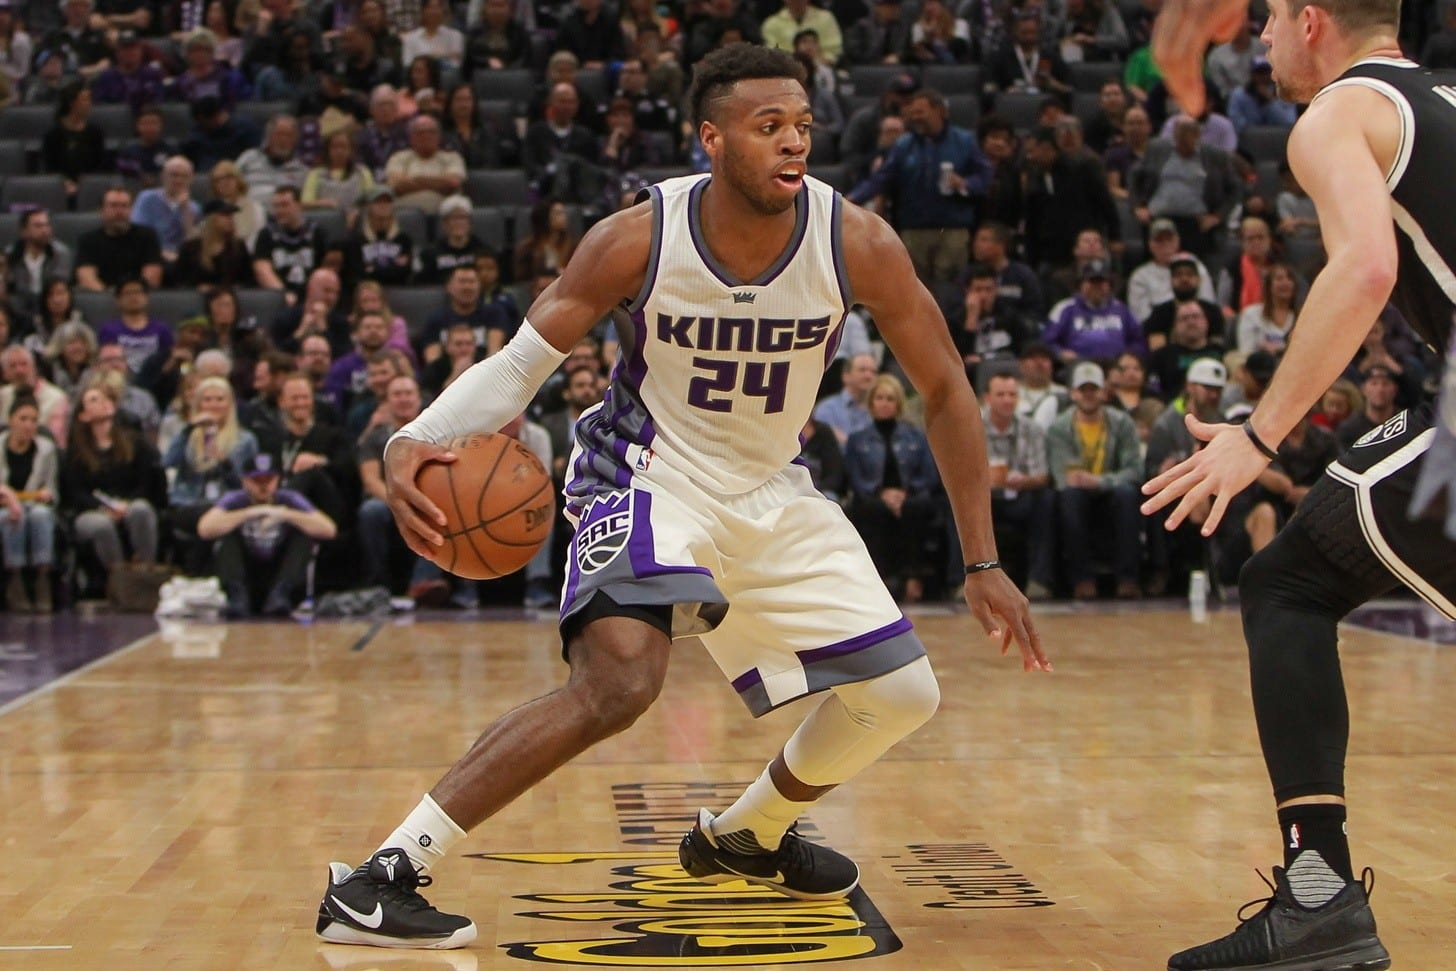 Nba Rookie Rankings: Buddy Hield Shining In Sacramento